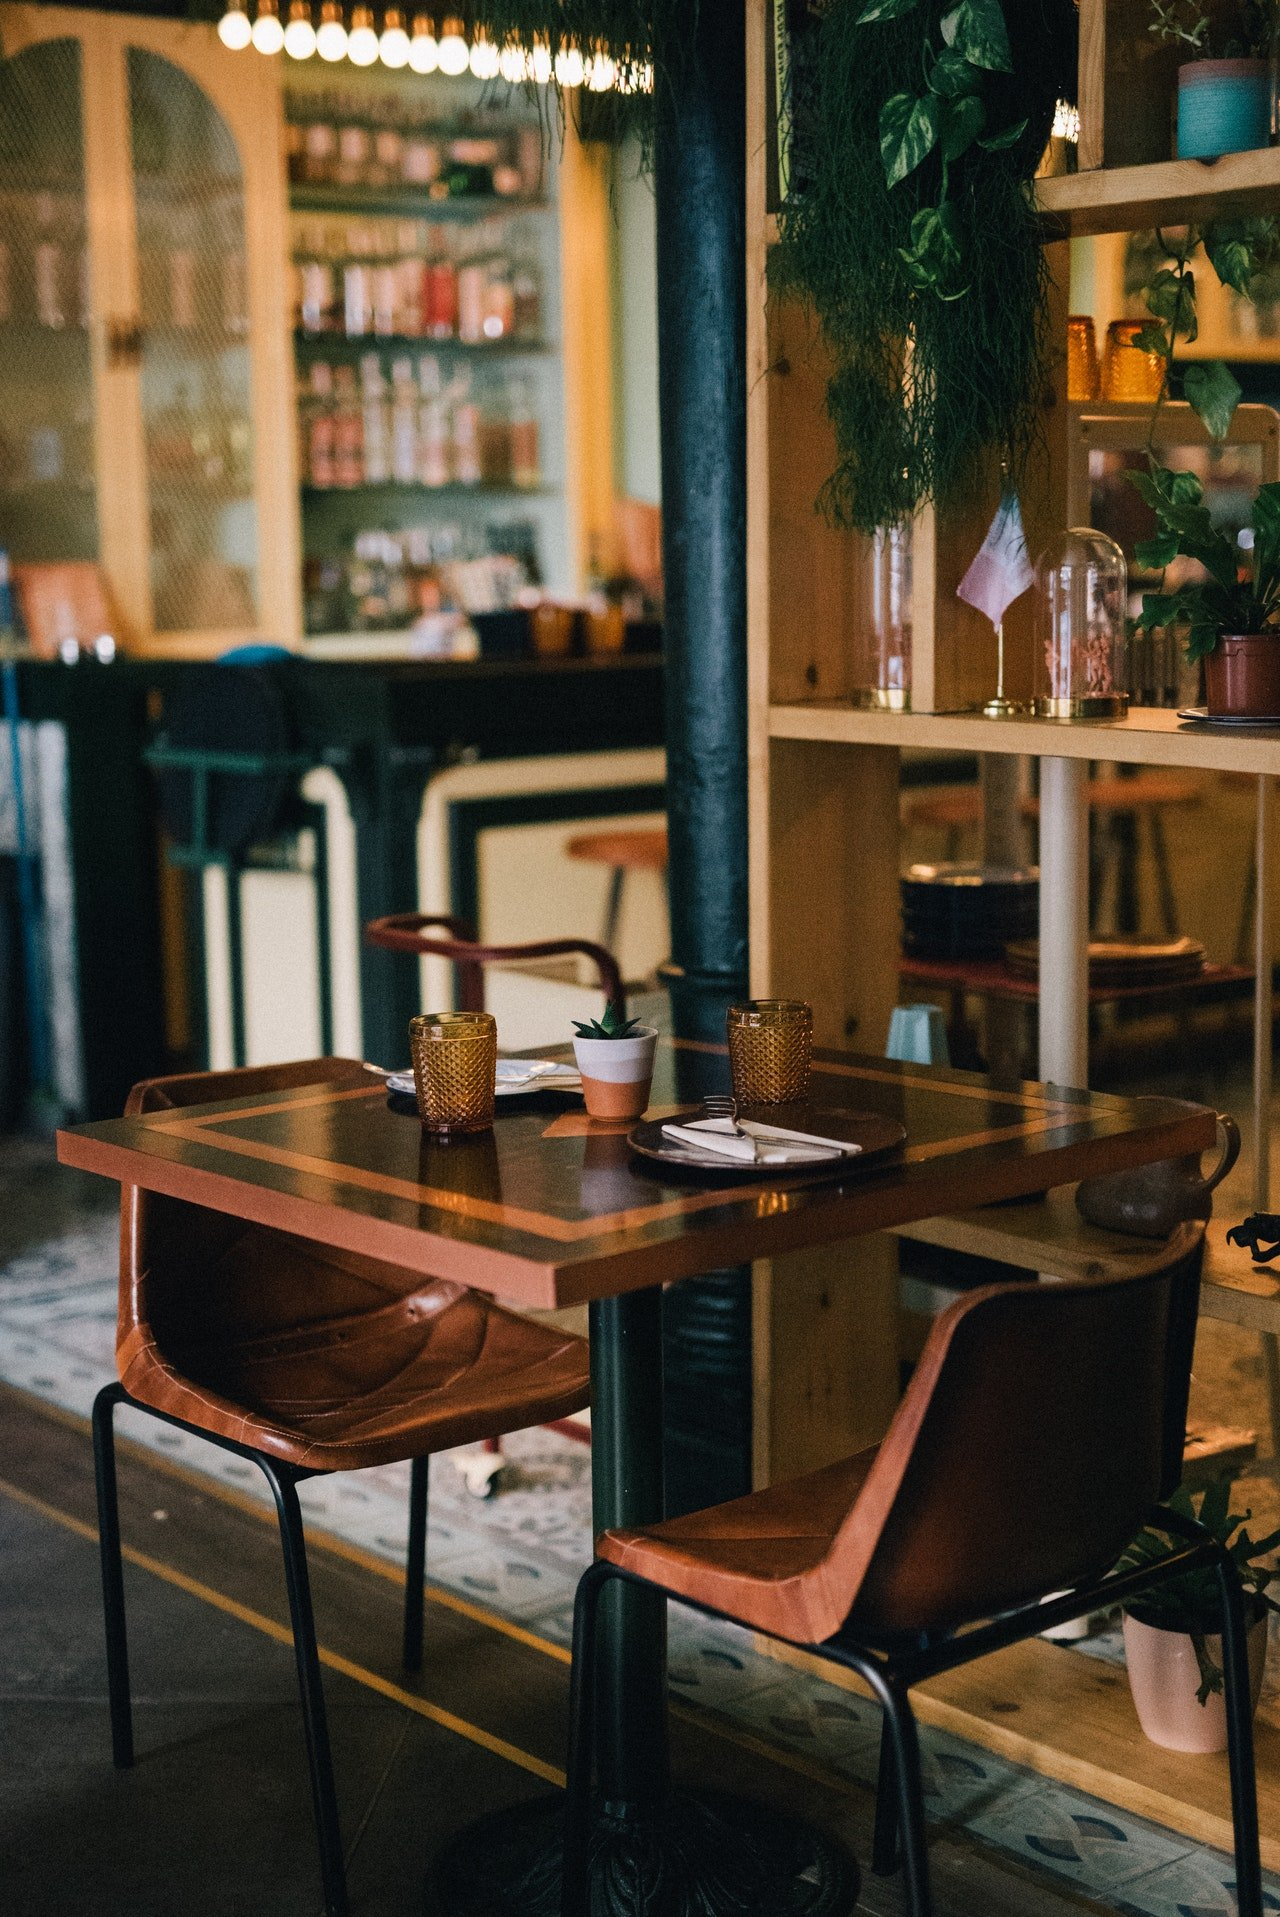 Photo of a beautiful restaurant | Photo: Pexels